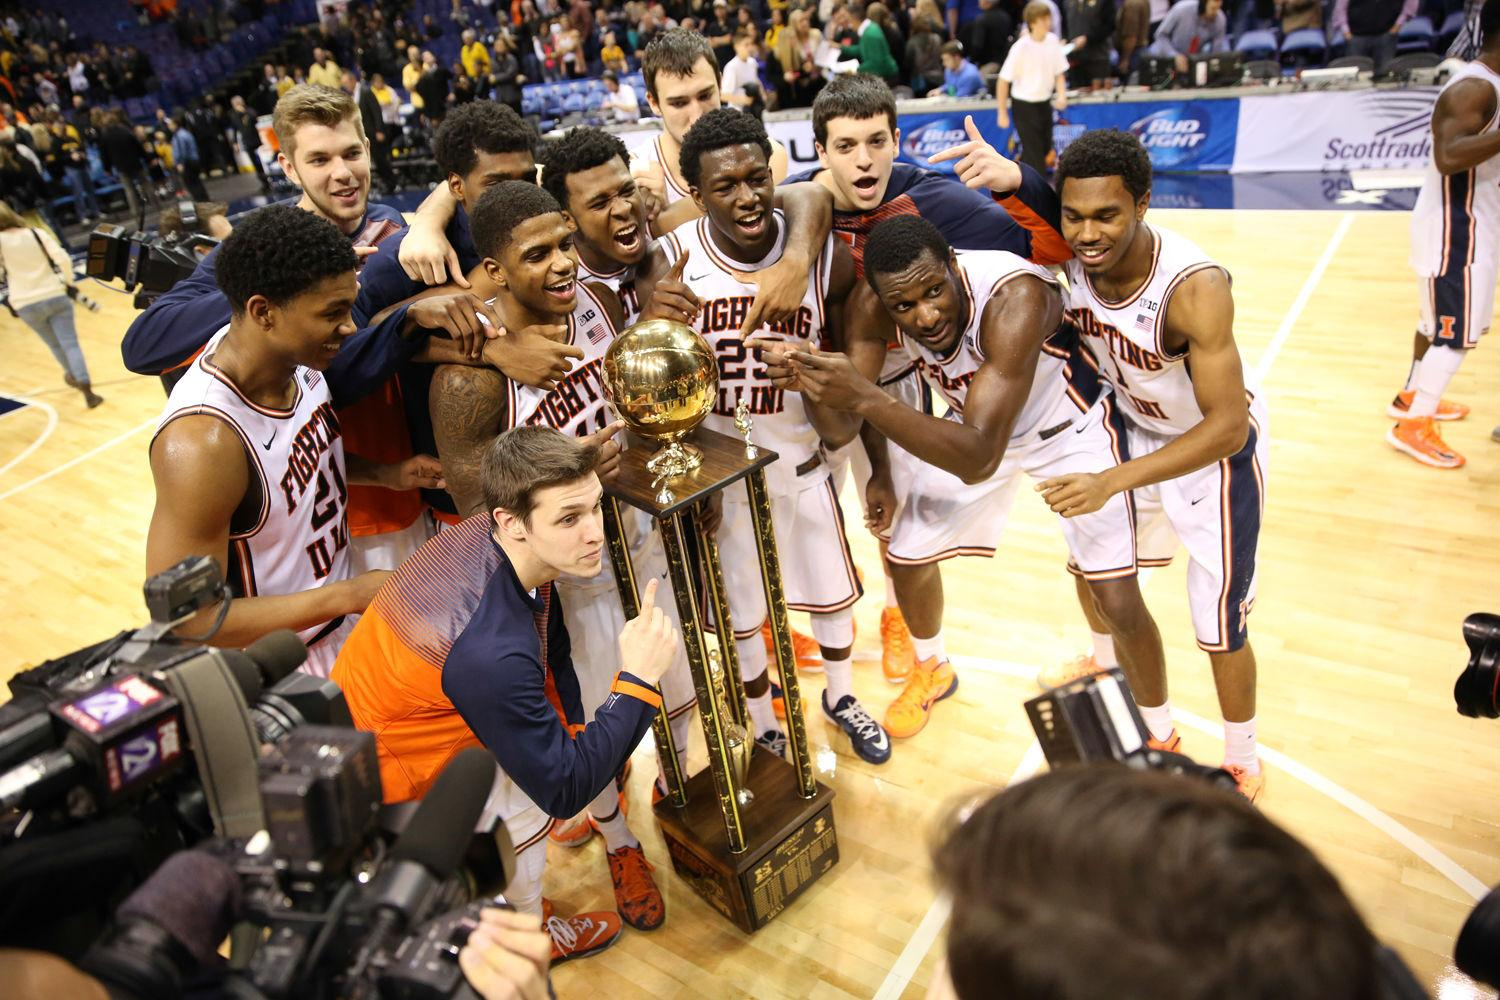 %3Cp%3EWhen+Rayvonte+Rice%E2%80%99s+buzzer-beating+three+went+through+the+net+to+sink+Mizzou%2C+any+frustration+with+this+Illini+team+went+disappeared.+Rice+gave+Illinois+fans+an+iconic+moment+when+he+stepped+up+on+the+big+stage.%3C%2Fp%3E